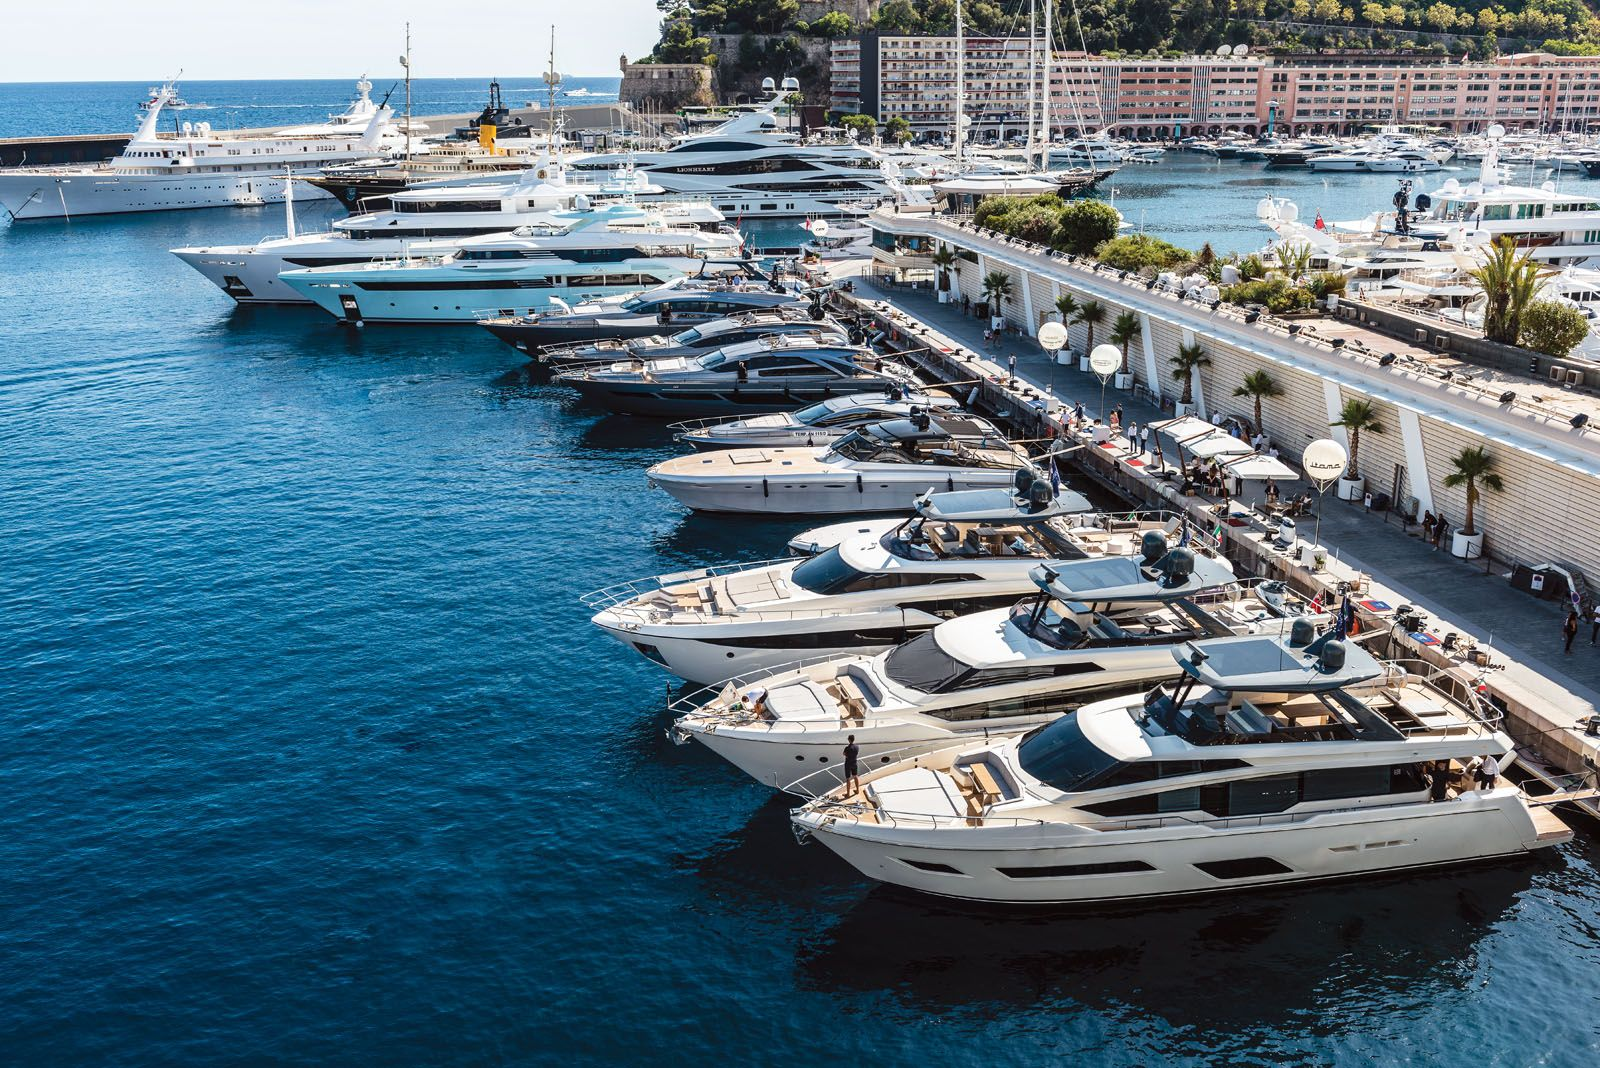 More than 25 yachts were showcased at the Ferretti Group's by invitation-only preview in Monaco this year